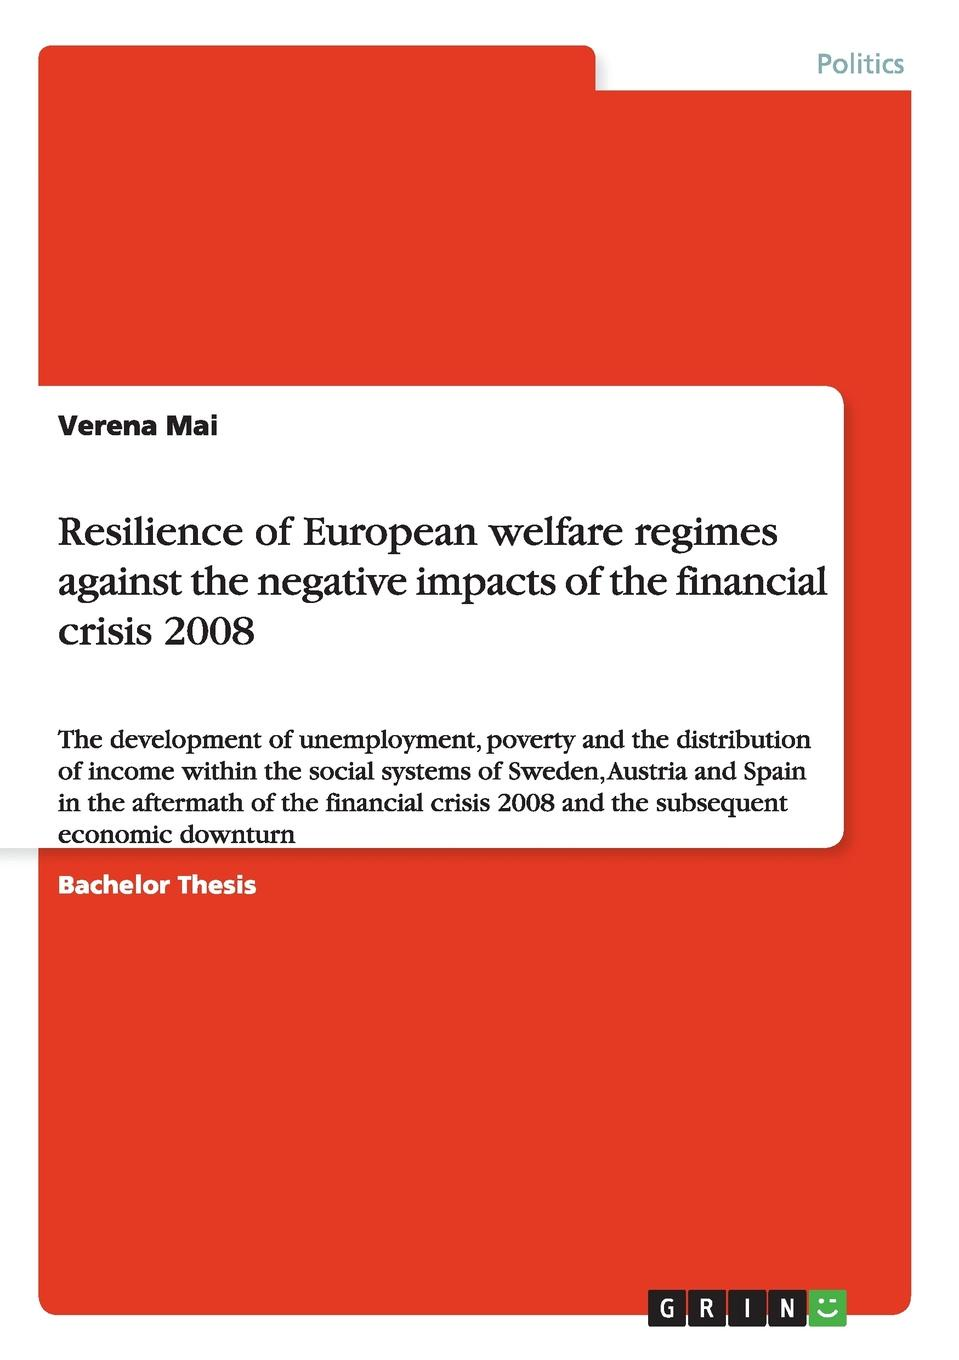 Verena Mai Resilience of European welfare regimes against the negative impacts of the financial crisis 2008 assessment of interest rates in see countries during crisis